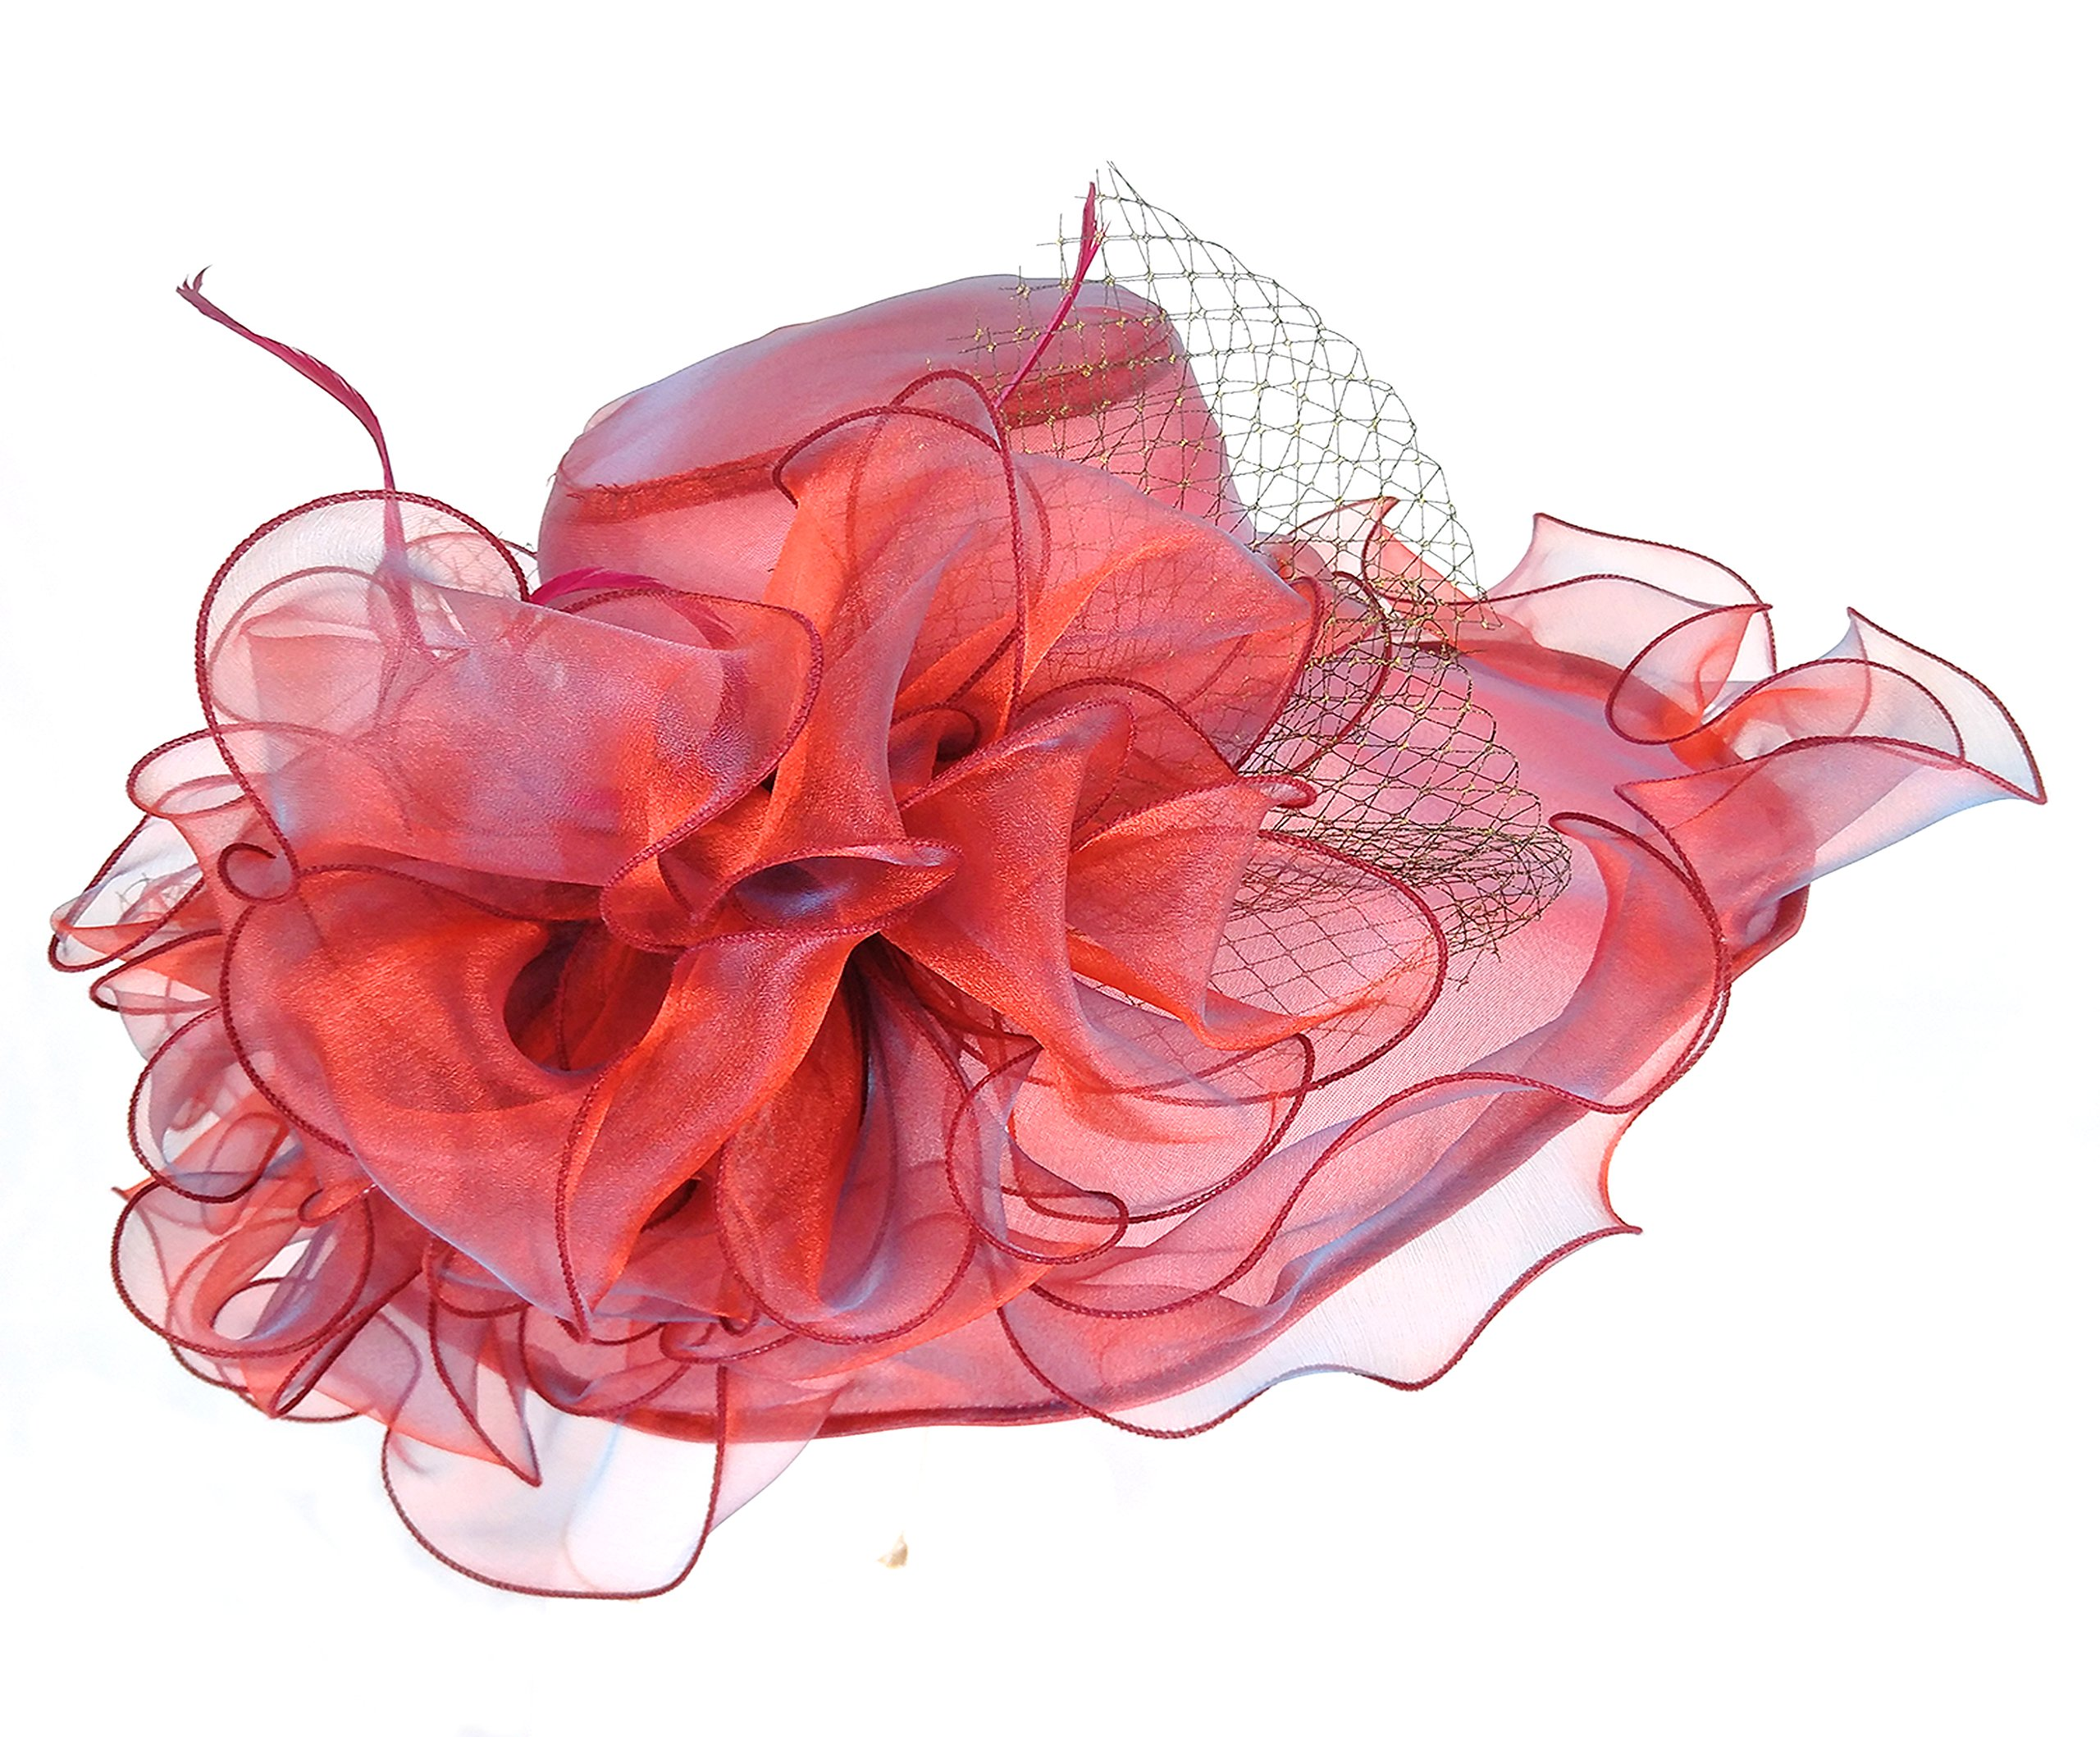 Seven Flowers Kentucky Derby Hats for Women Church Ladies Wedding British Tea Party Hat (12-red) by Seven Flowers (Image #5)